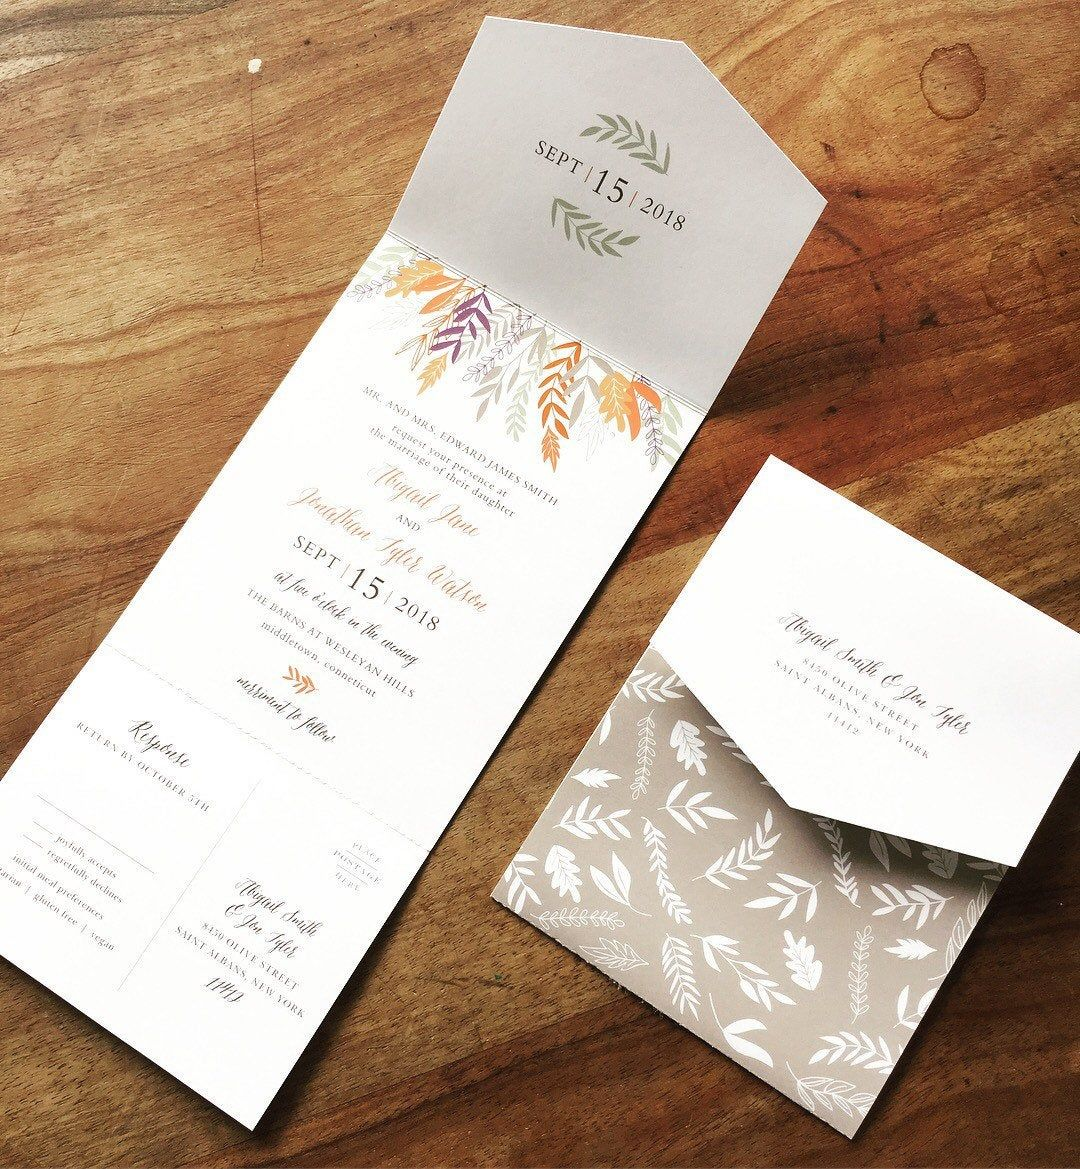 All in one wedding invitation. Seal and send. image 3  Wedding